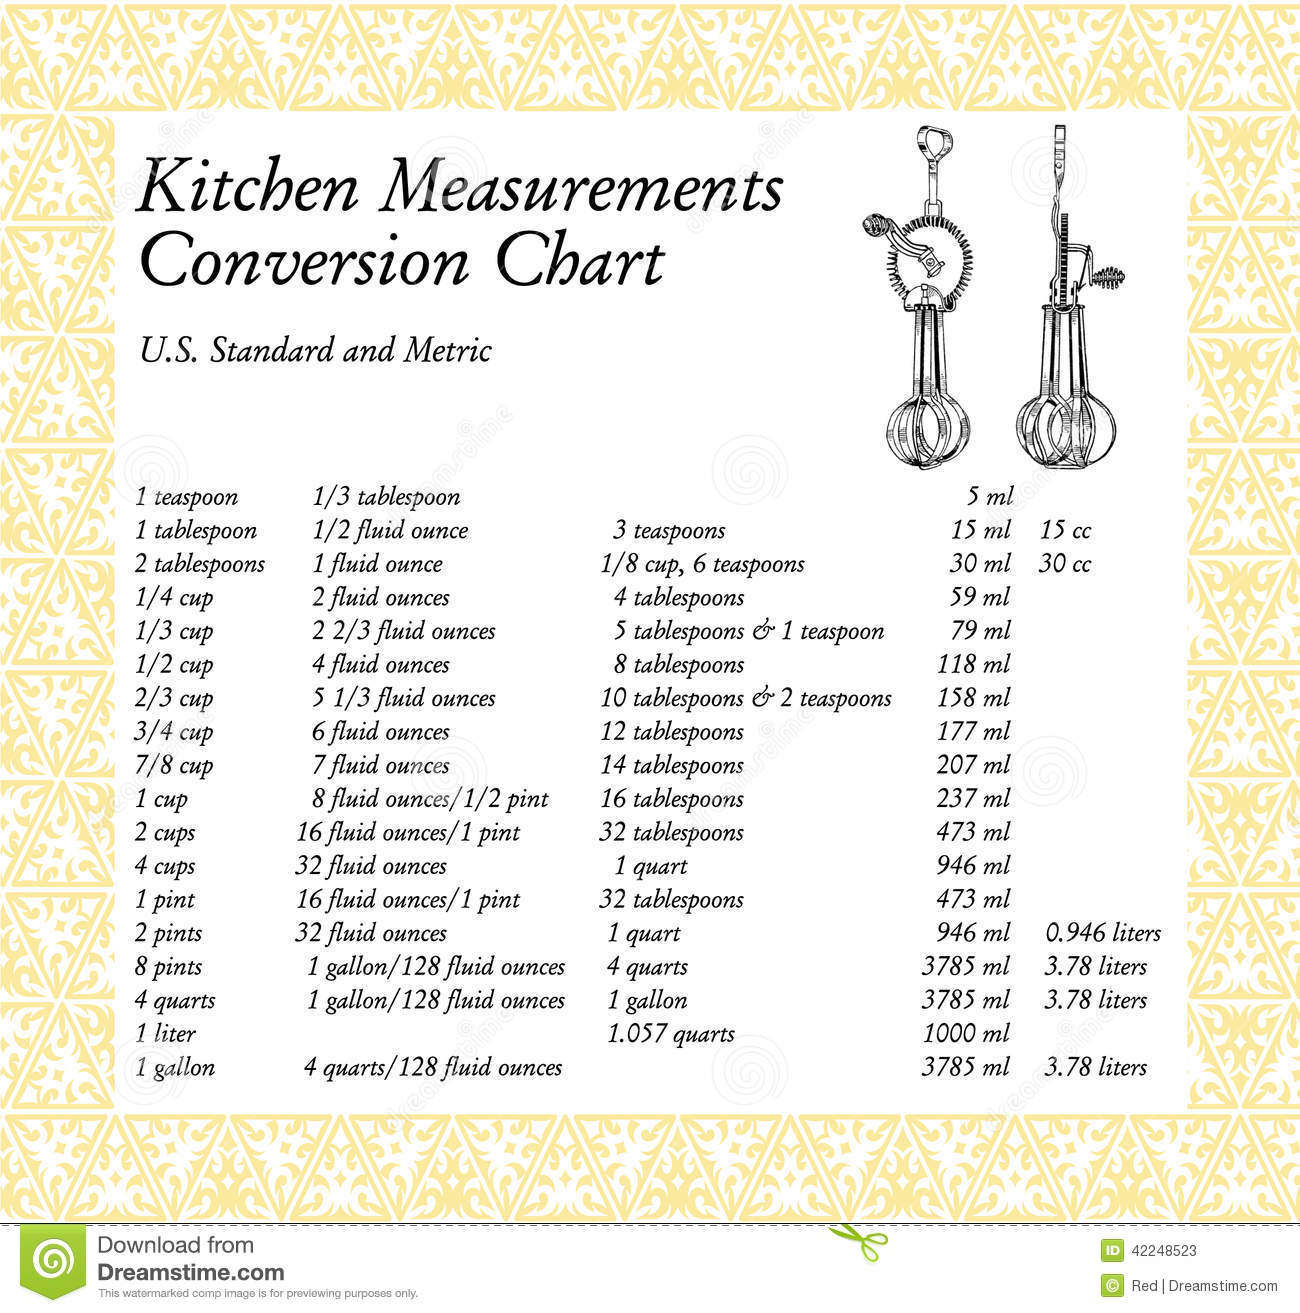 Conversions Measurements Gallon Quart